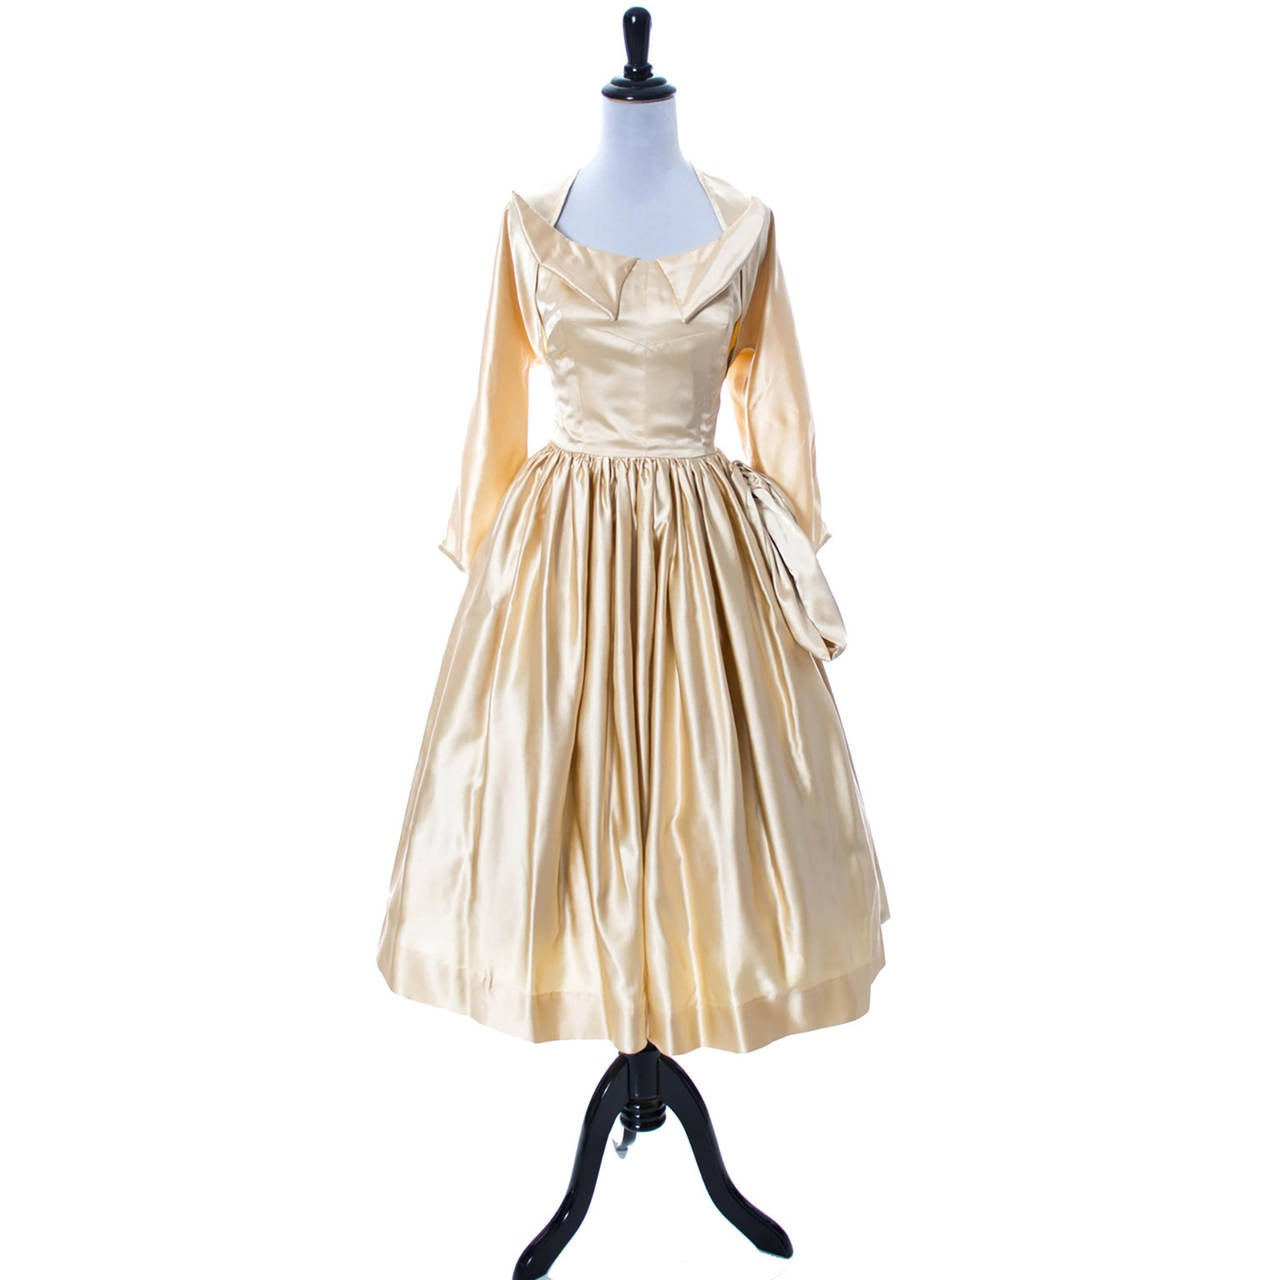 1950s Vintage Dress Champagne Satin Winged Bust Wedding Peg Powers Original 4